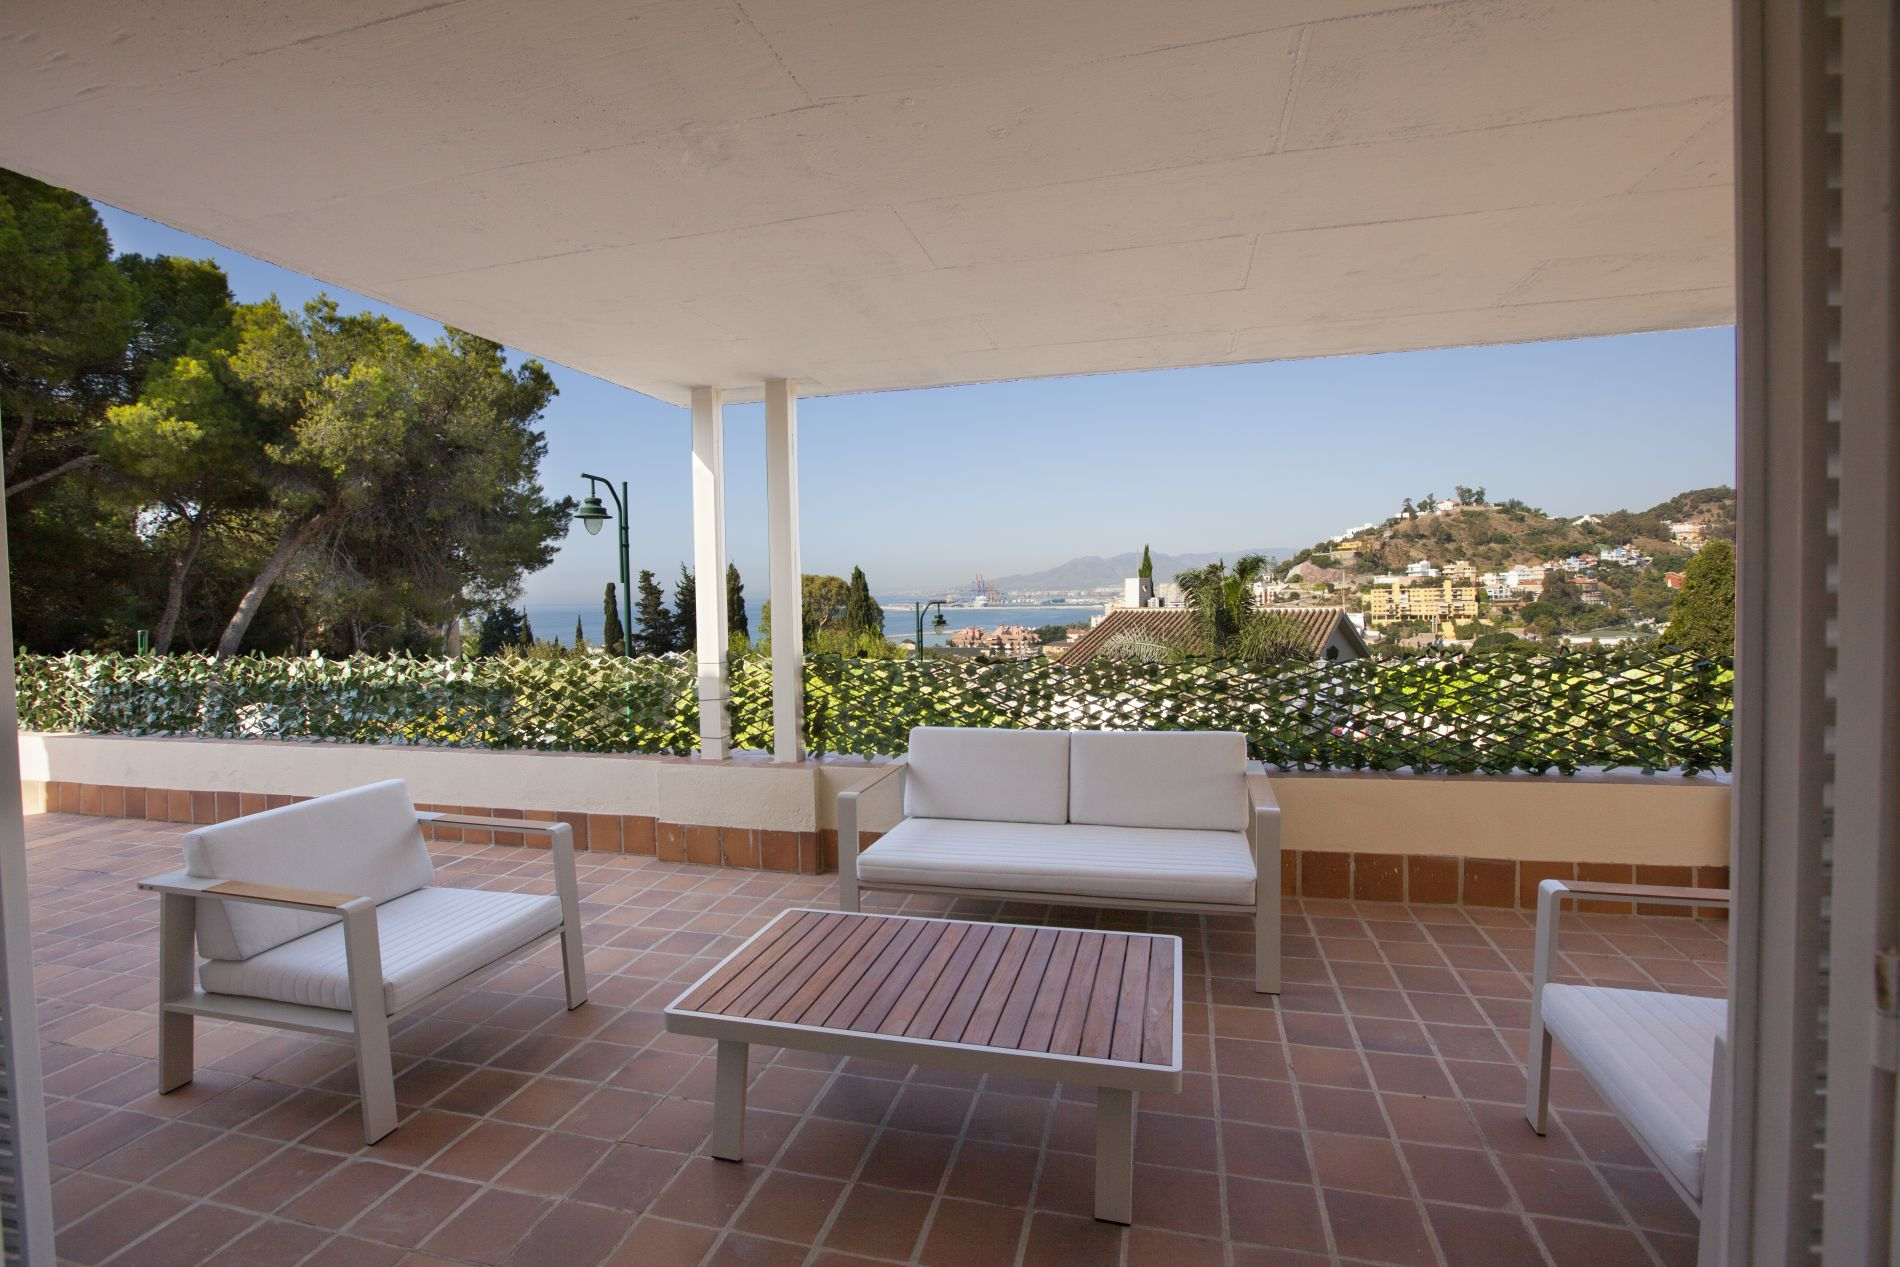 Furnished apartment in Malaga with sea view and an incredible balcony/ terrace